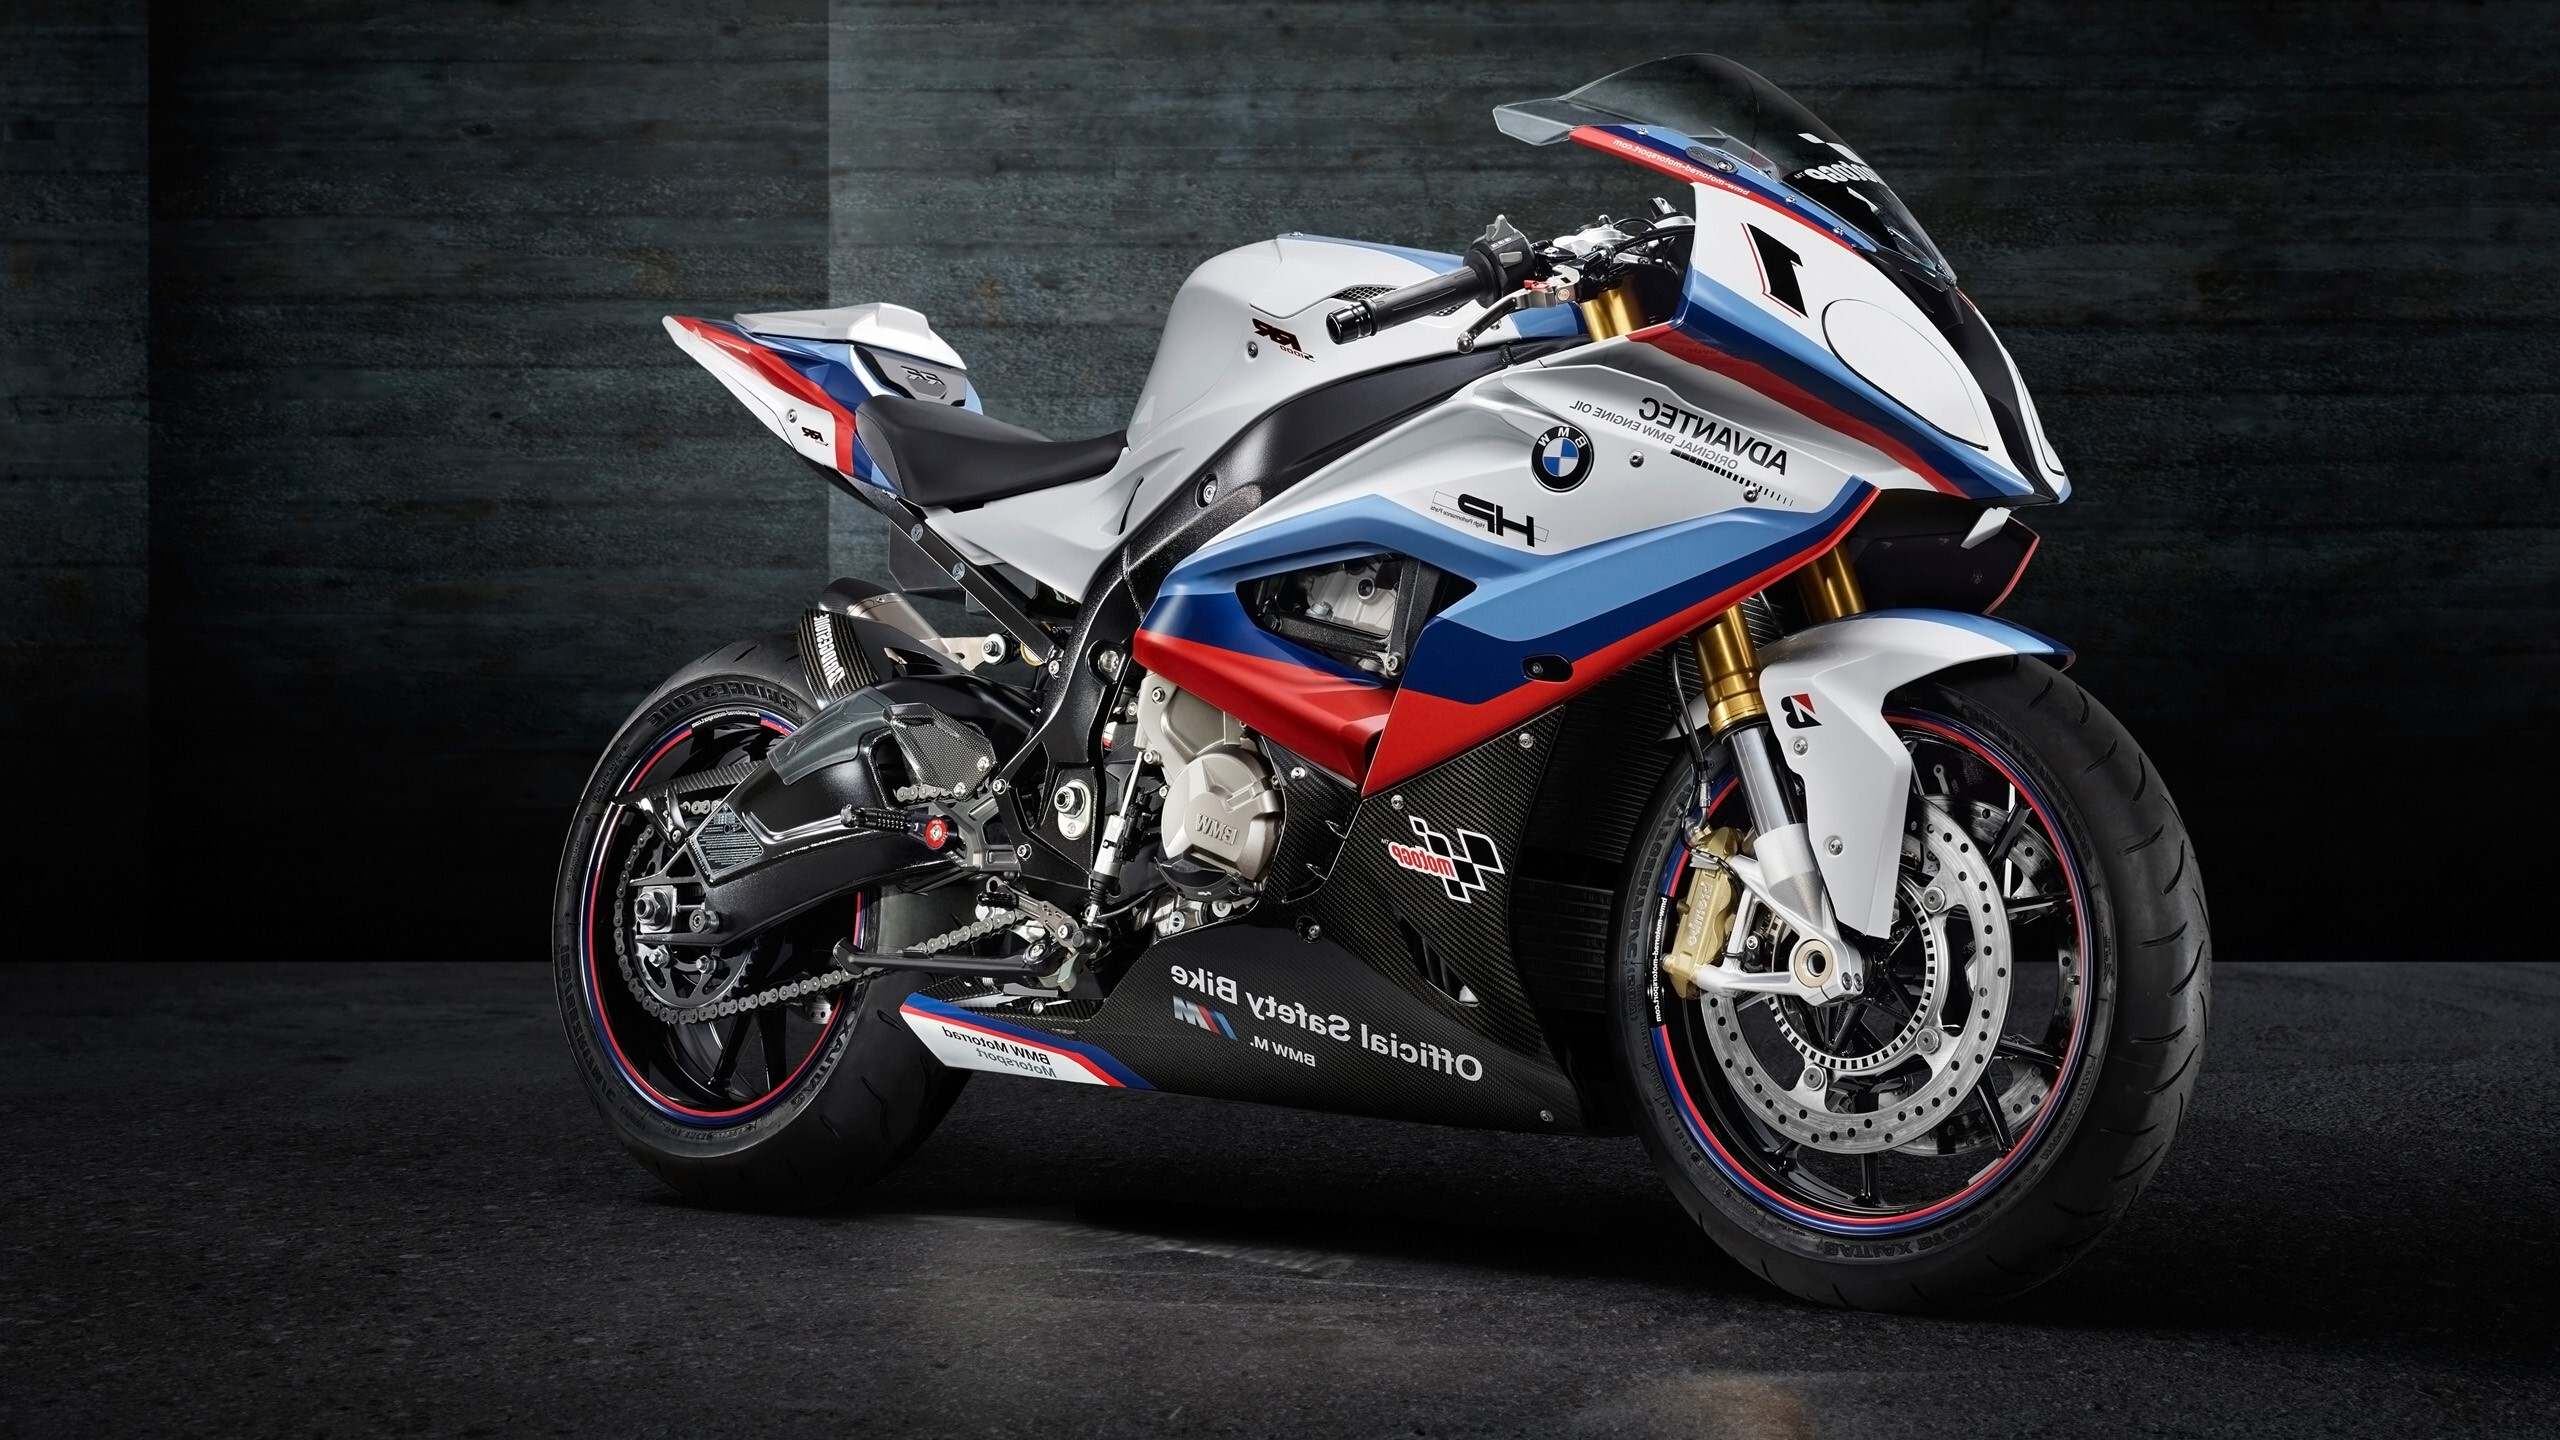 2560x1440 Bmw M4 Motogp Safety Bike 1440p Resolution Hd 4k